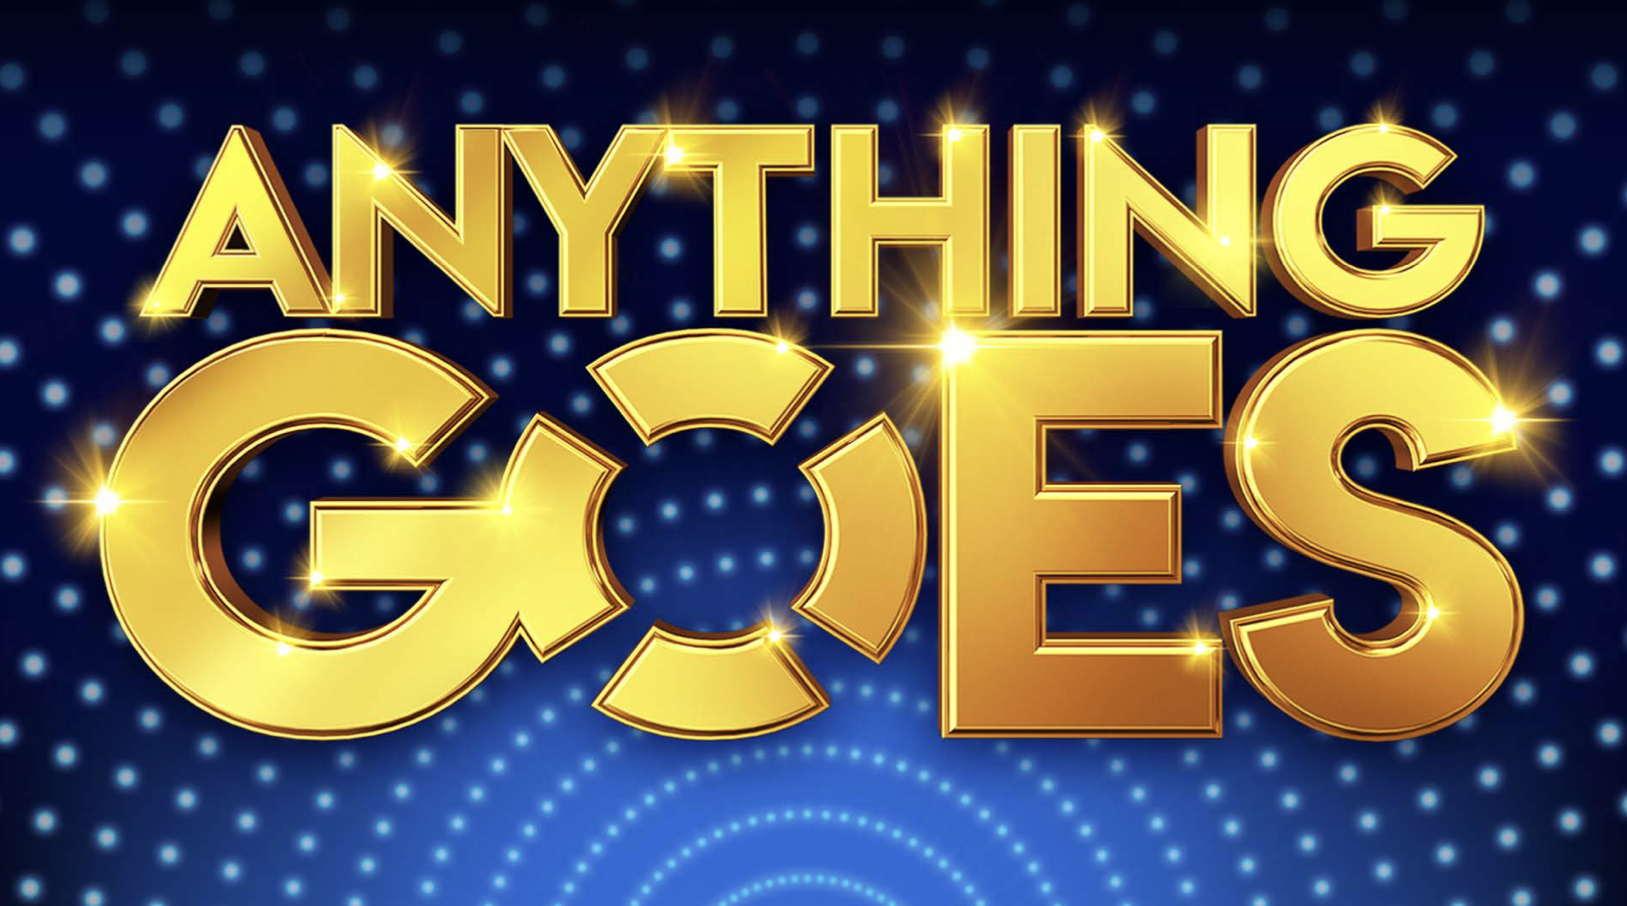 Megan Mullally and Robert Lindsay to star in Anything Goes